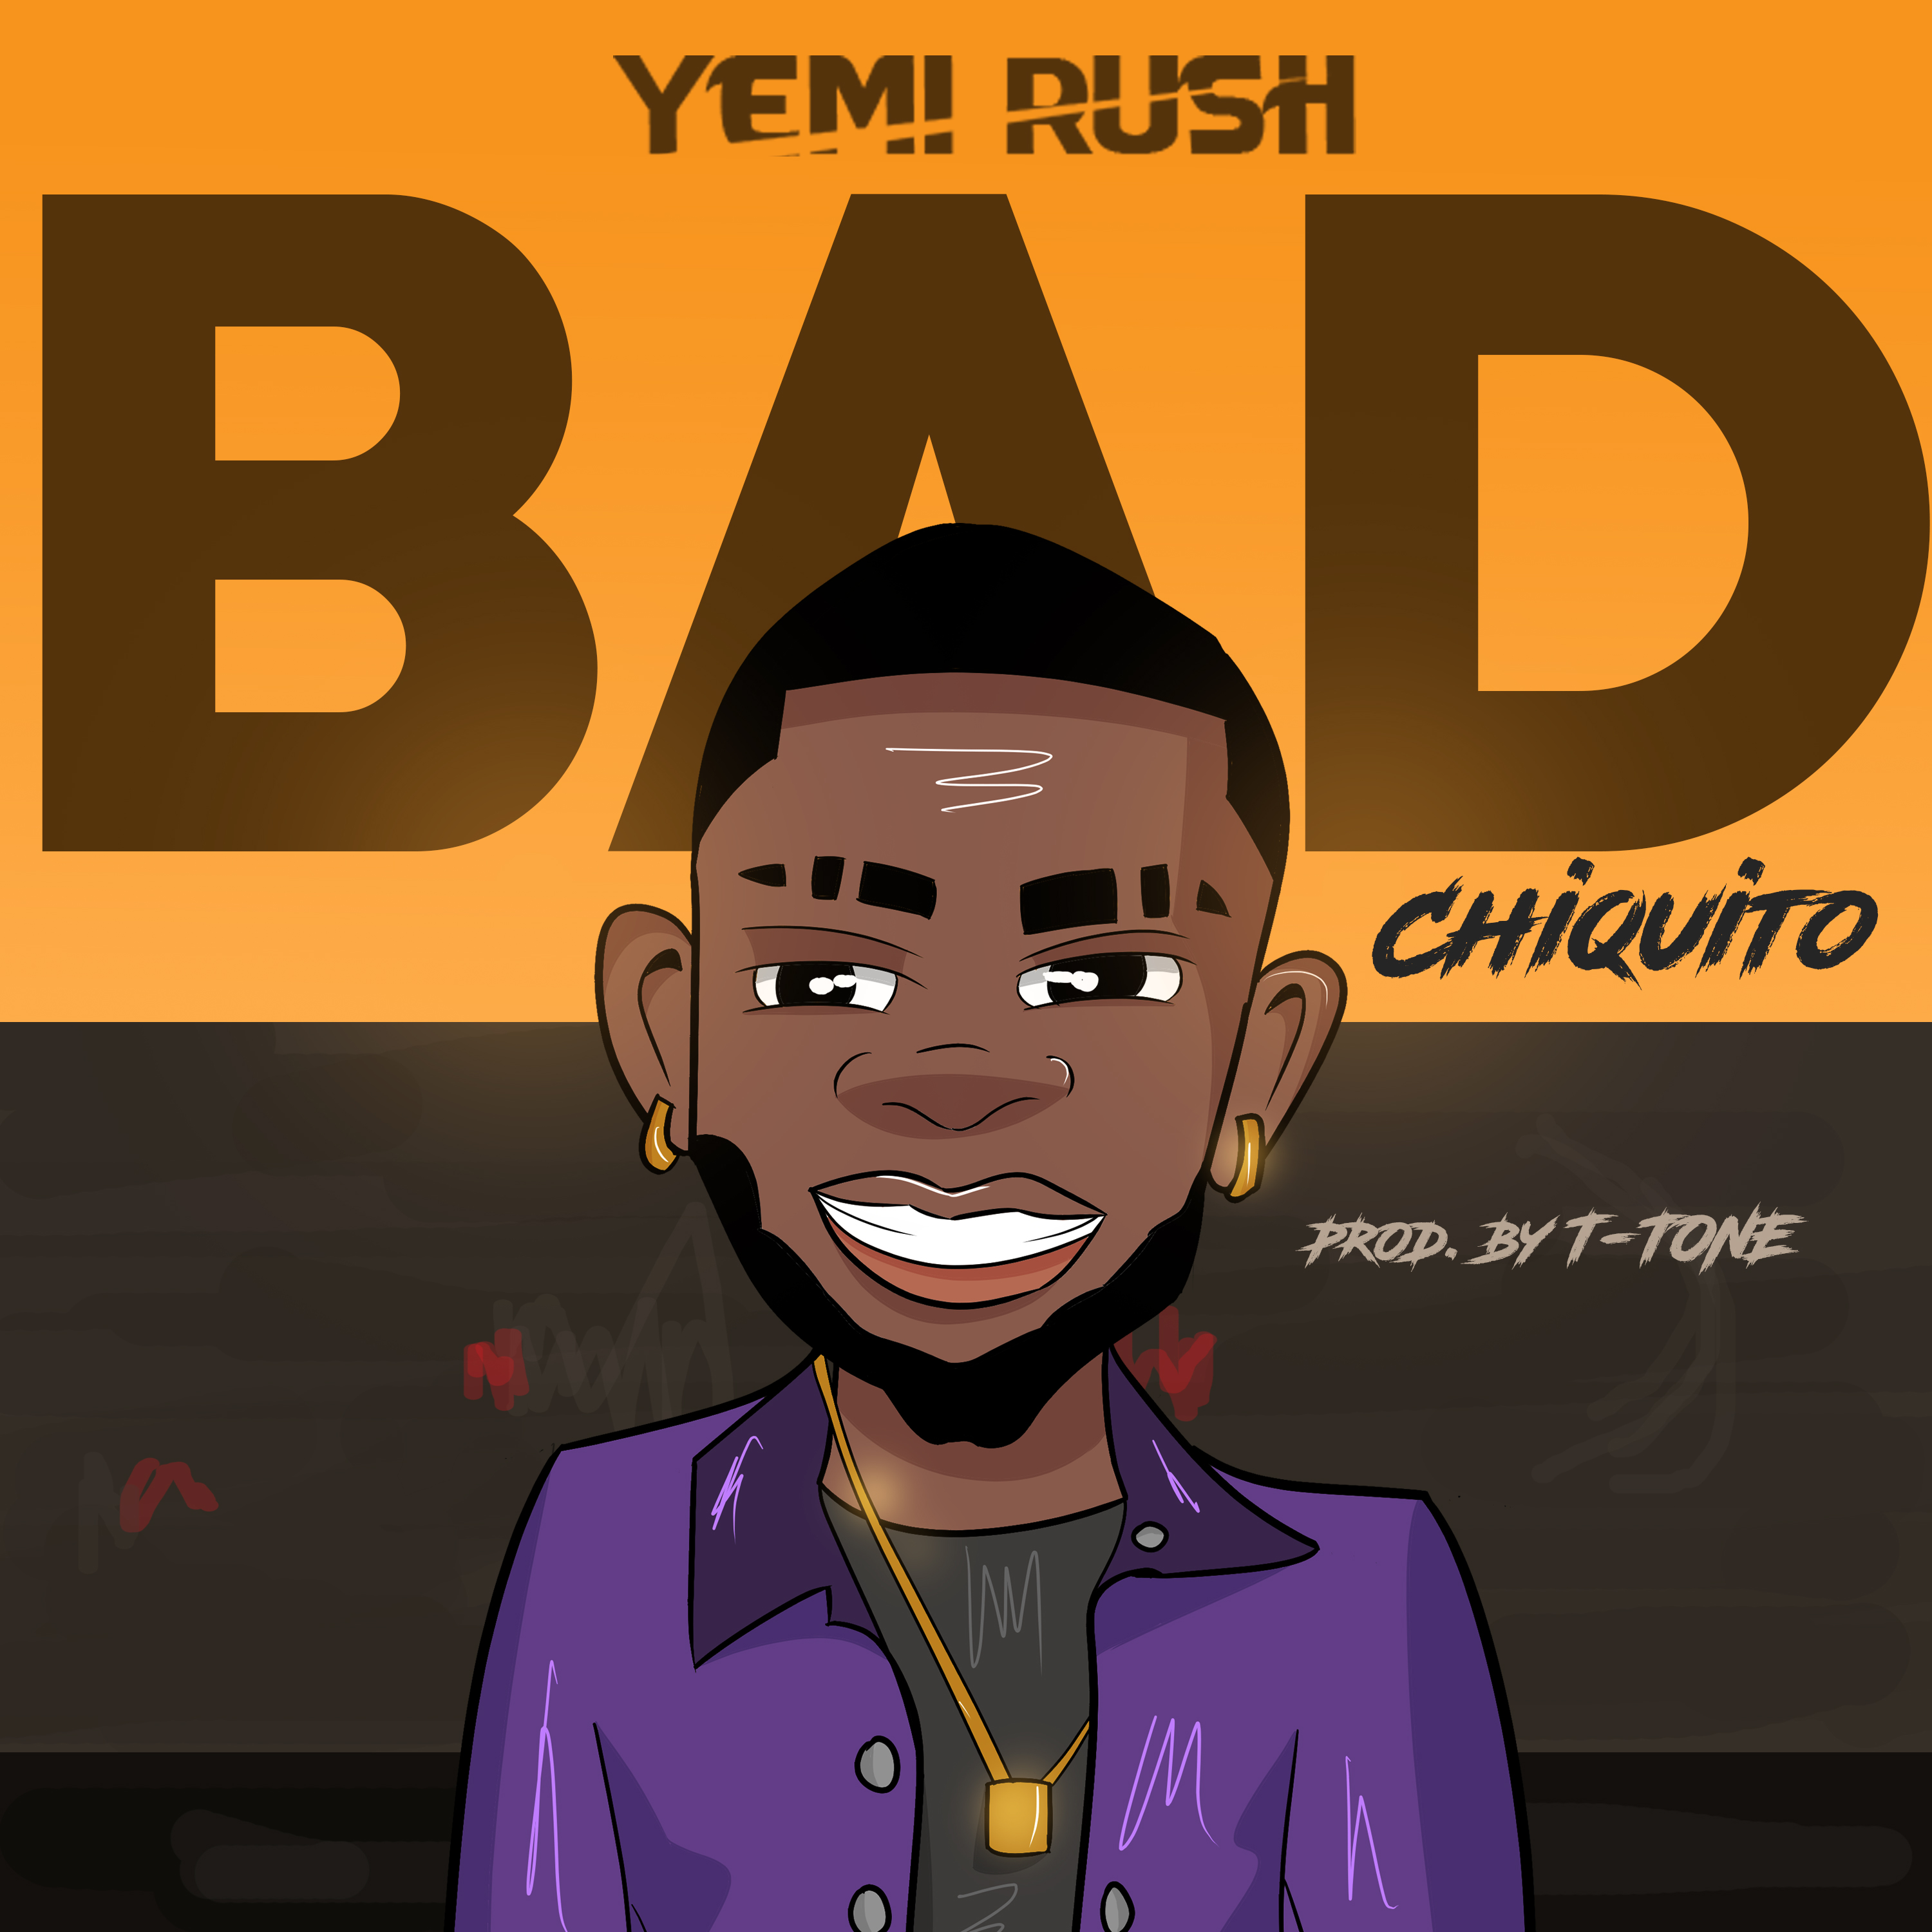 Yemi Rush - Bad (Chiquito)